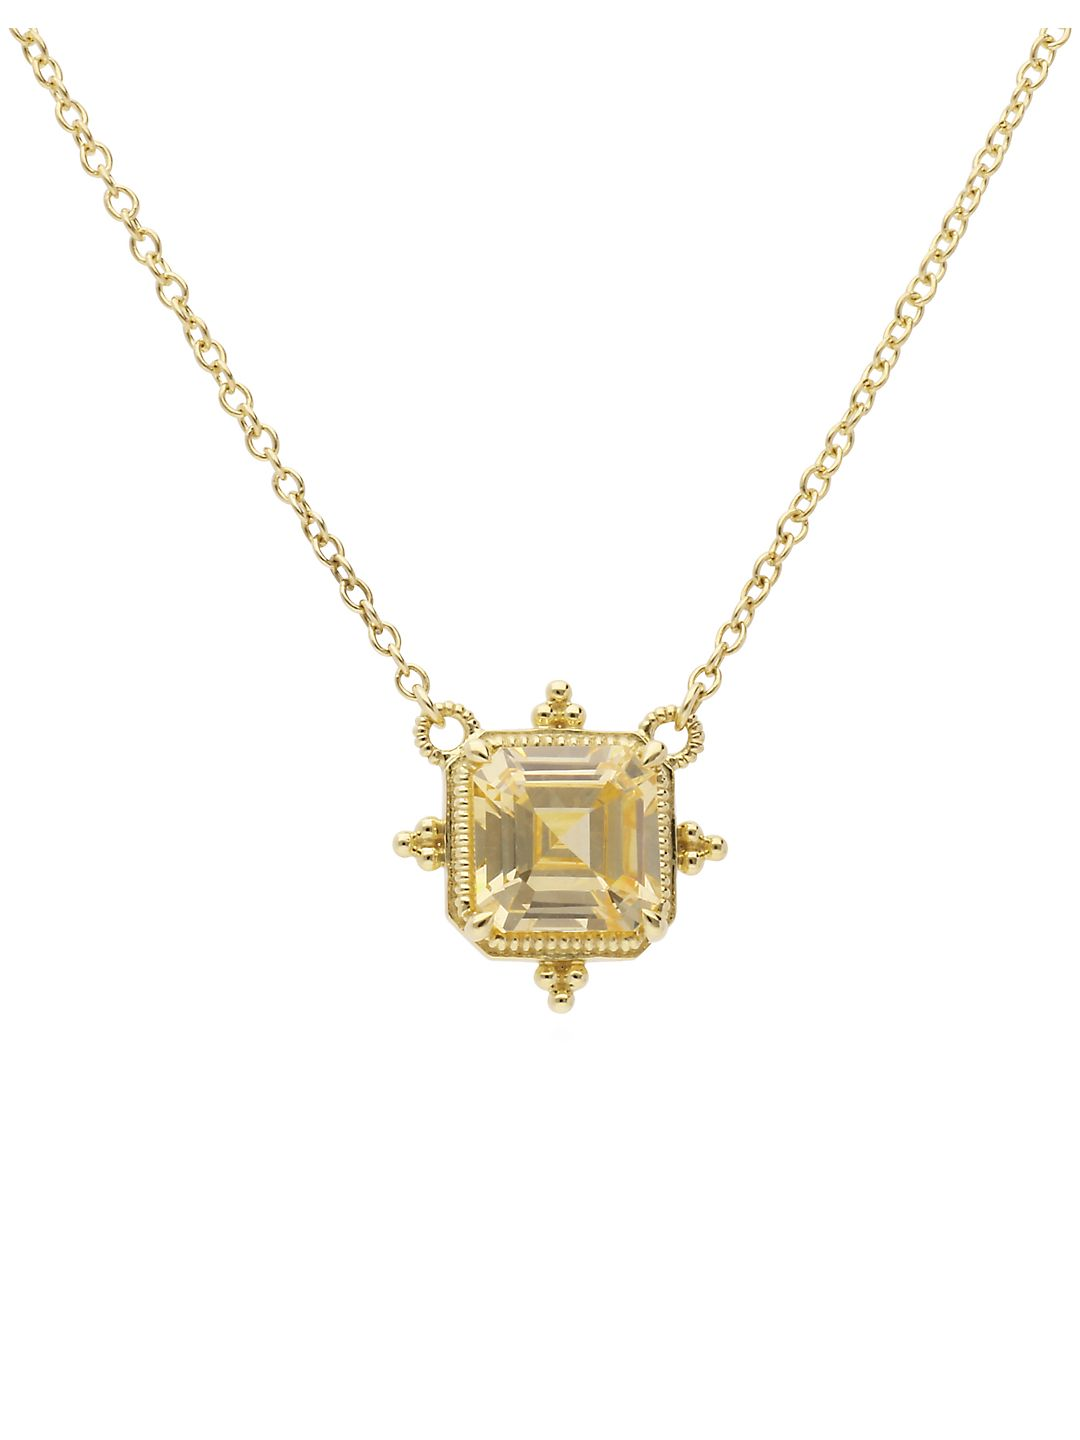 Angelica Canary Cubic Zirconia and 14K Yellow Gold Pendant Necklace